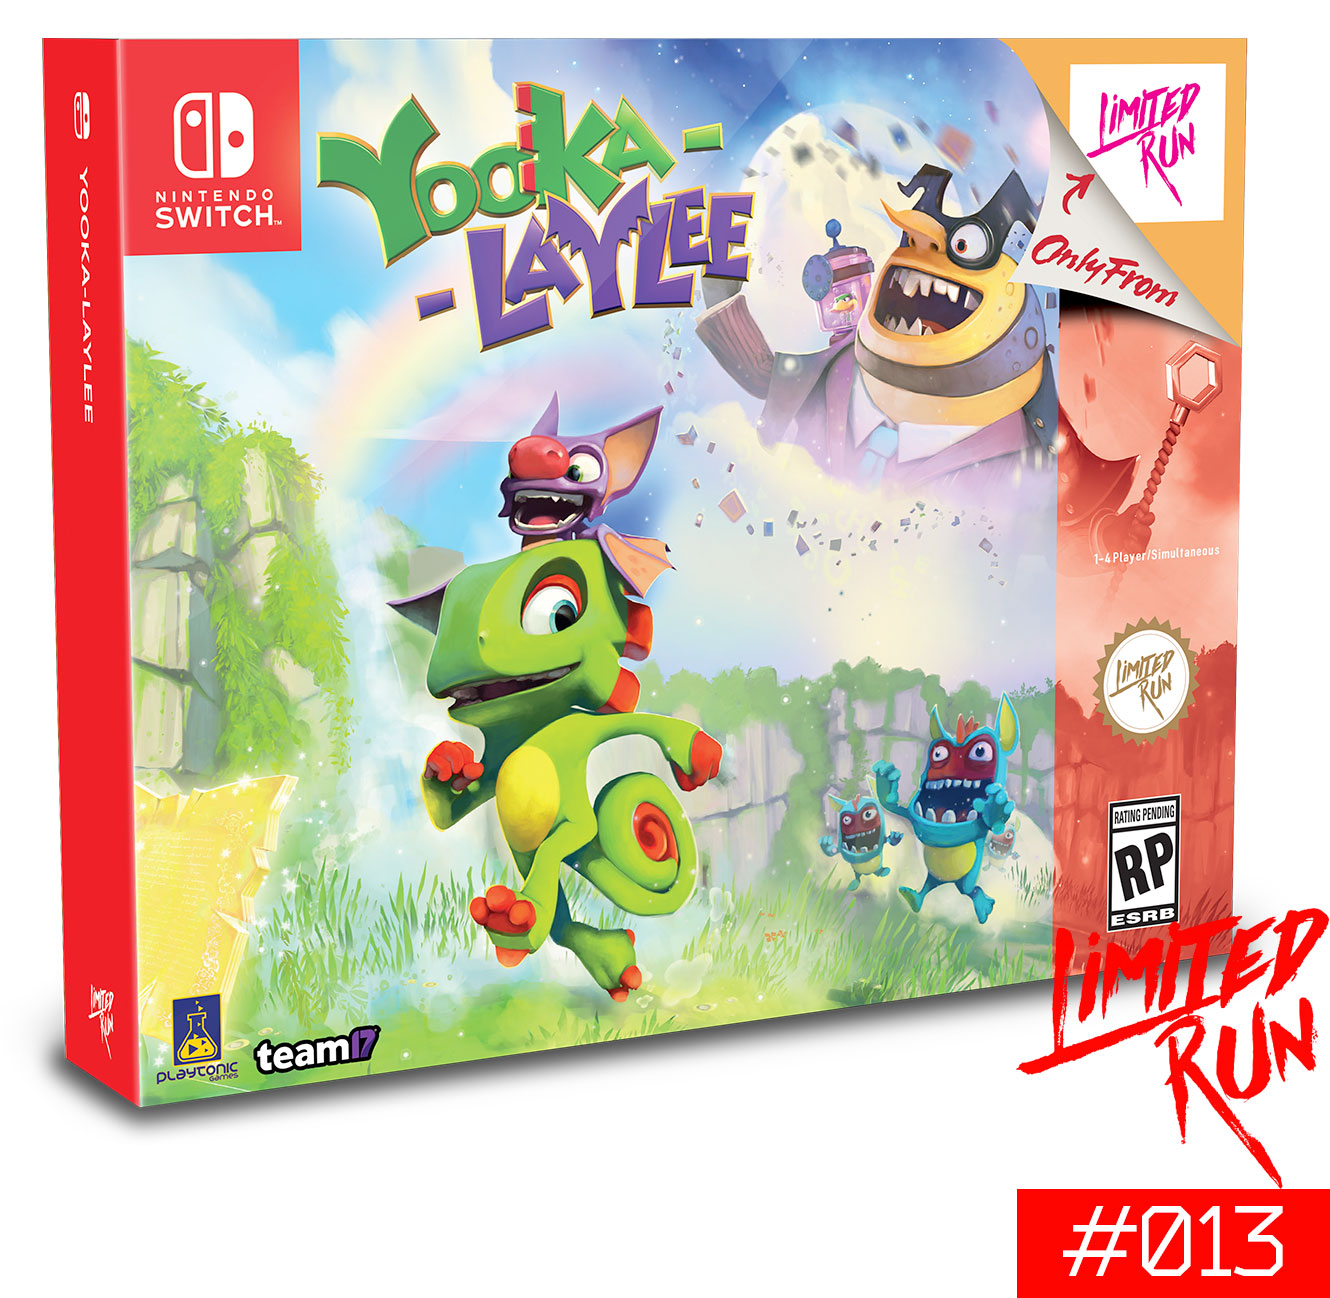 Yooka-Laylee Classic Edition for Nintendo Switch